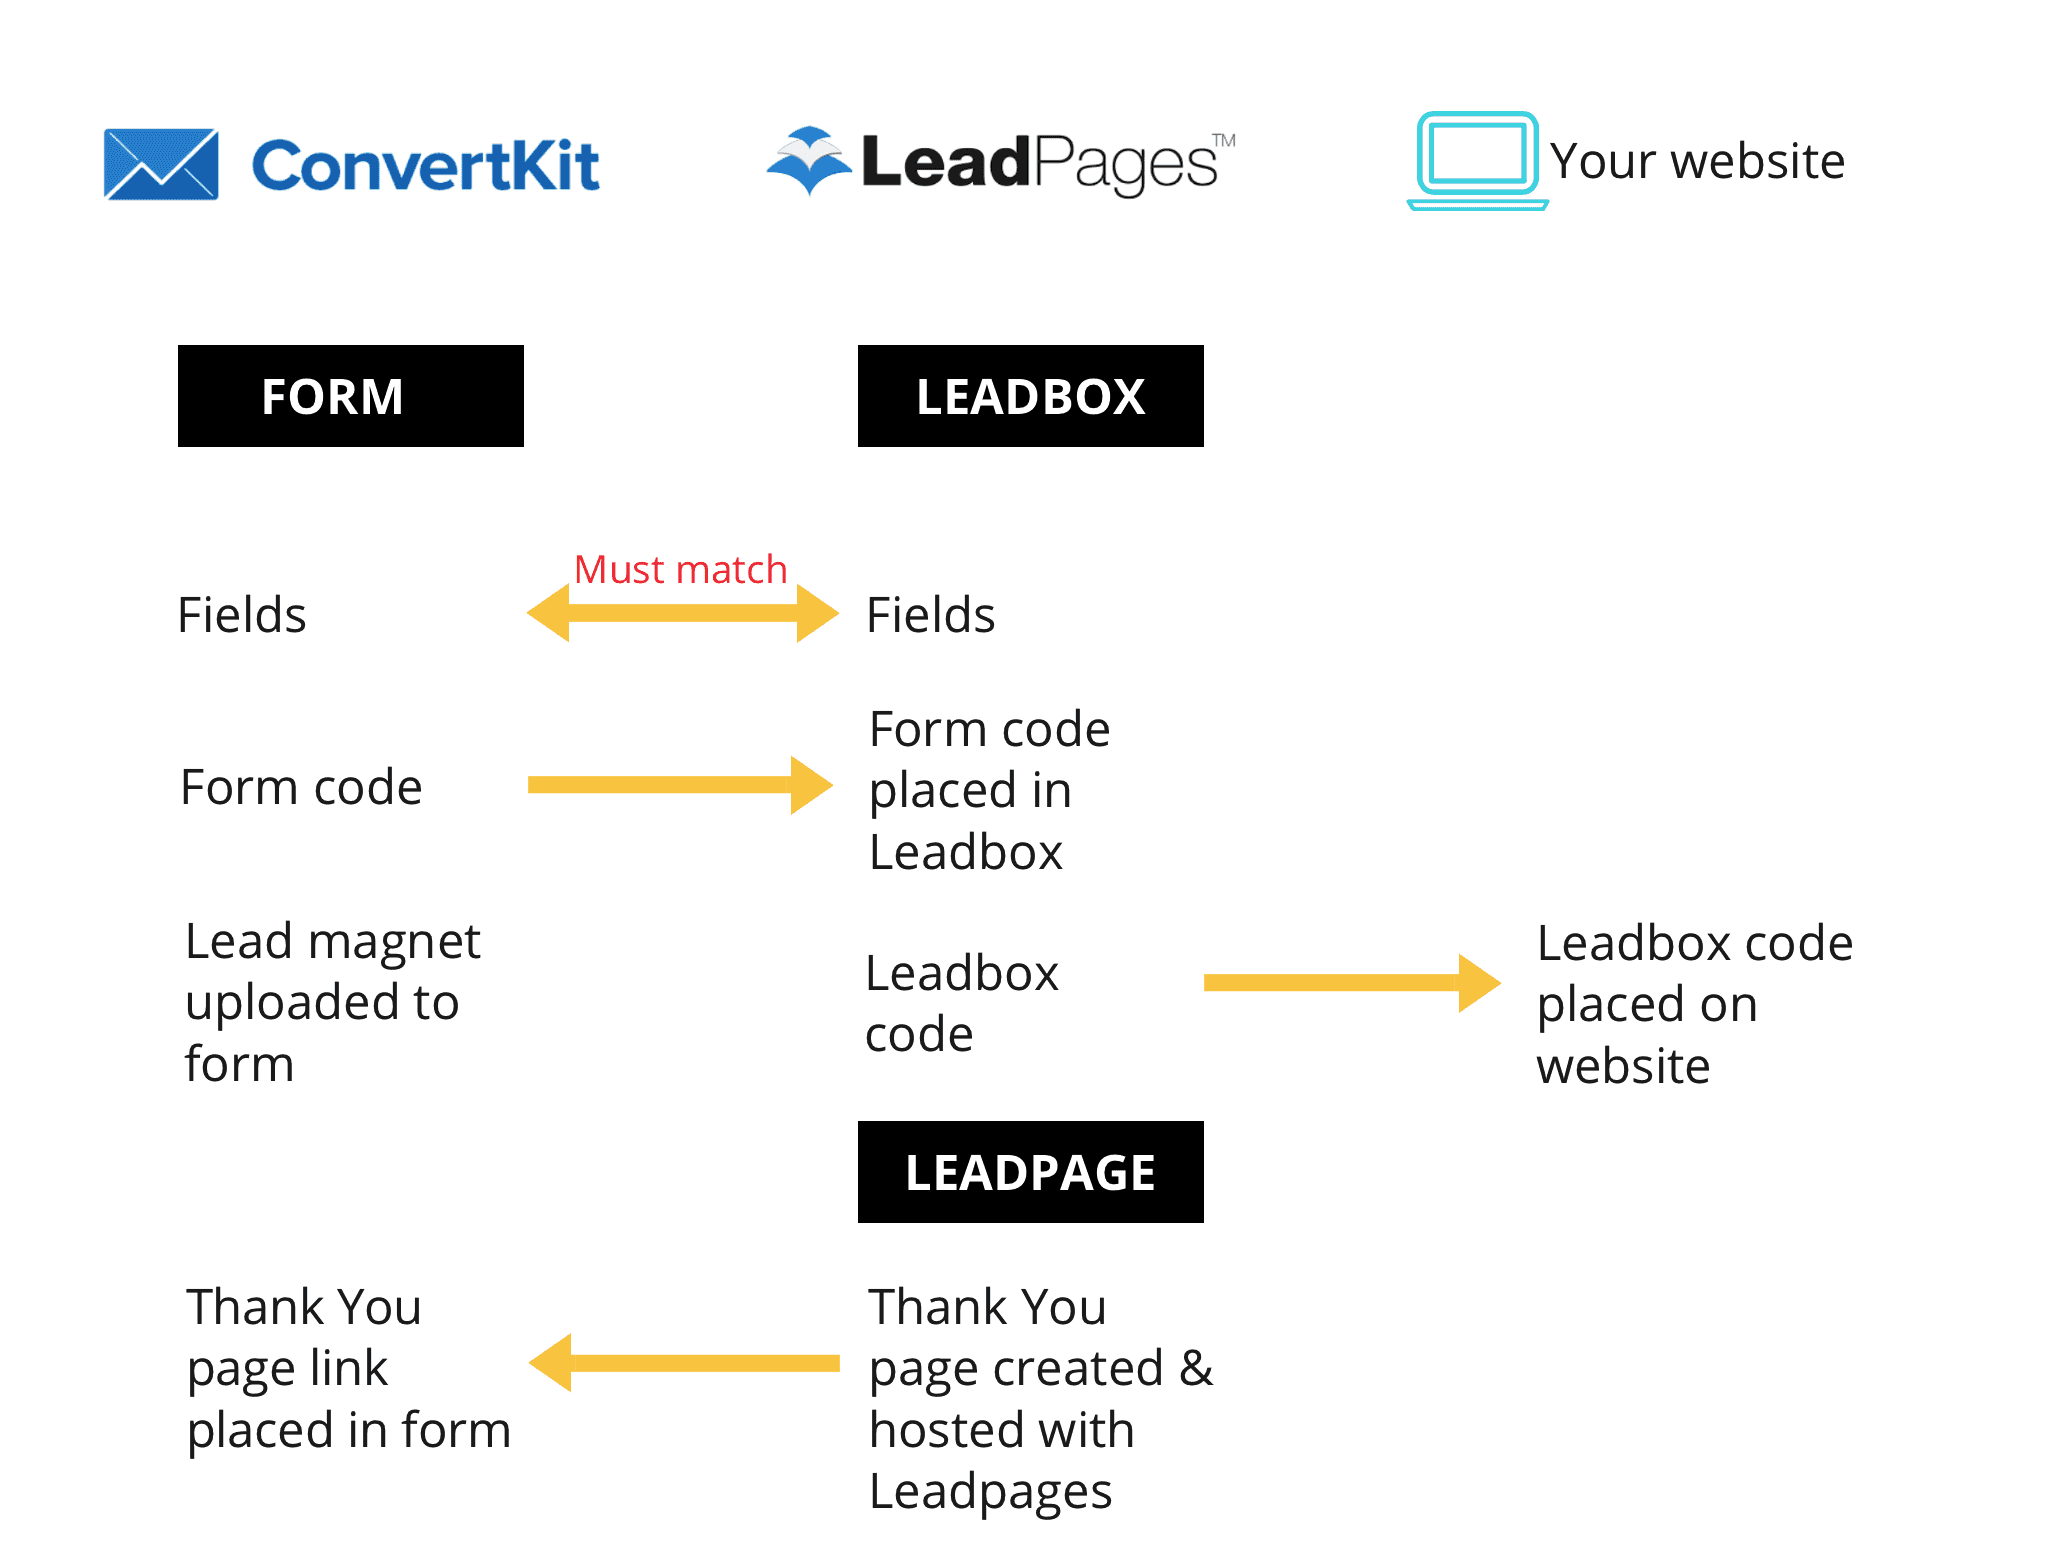 Getting The Leadpages Vs Convertkit To Work